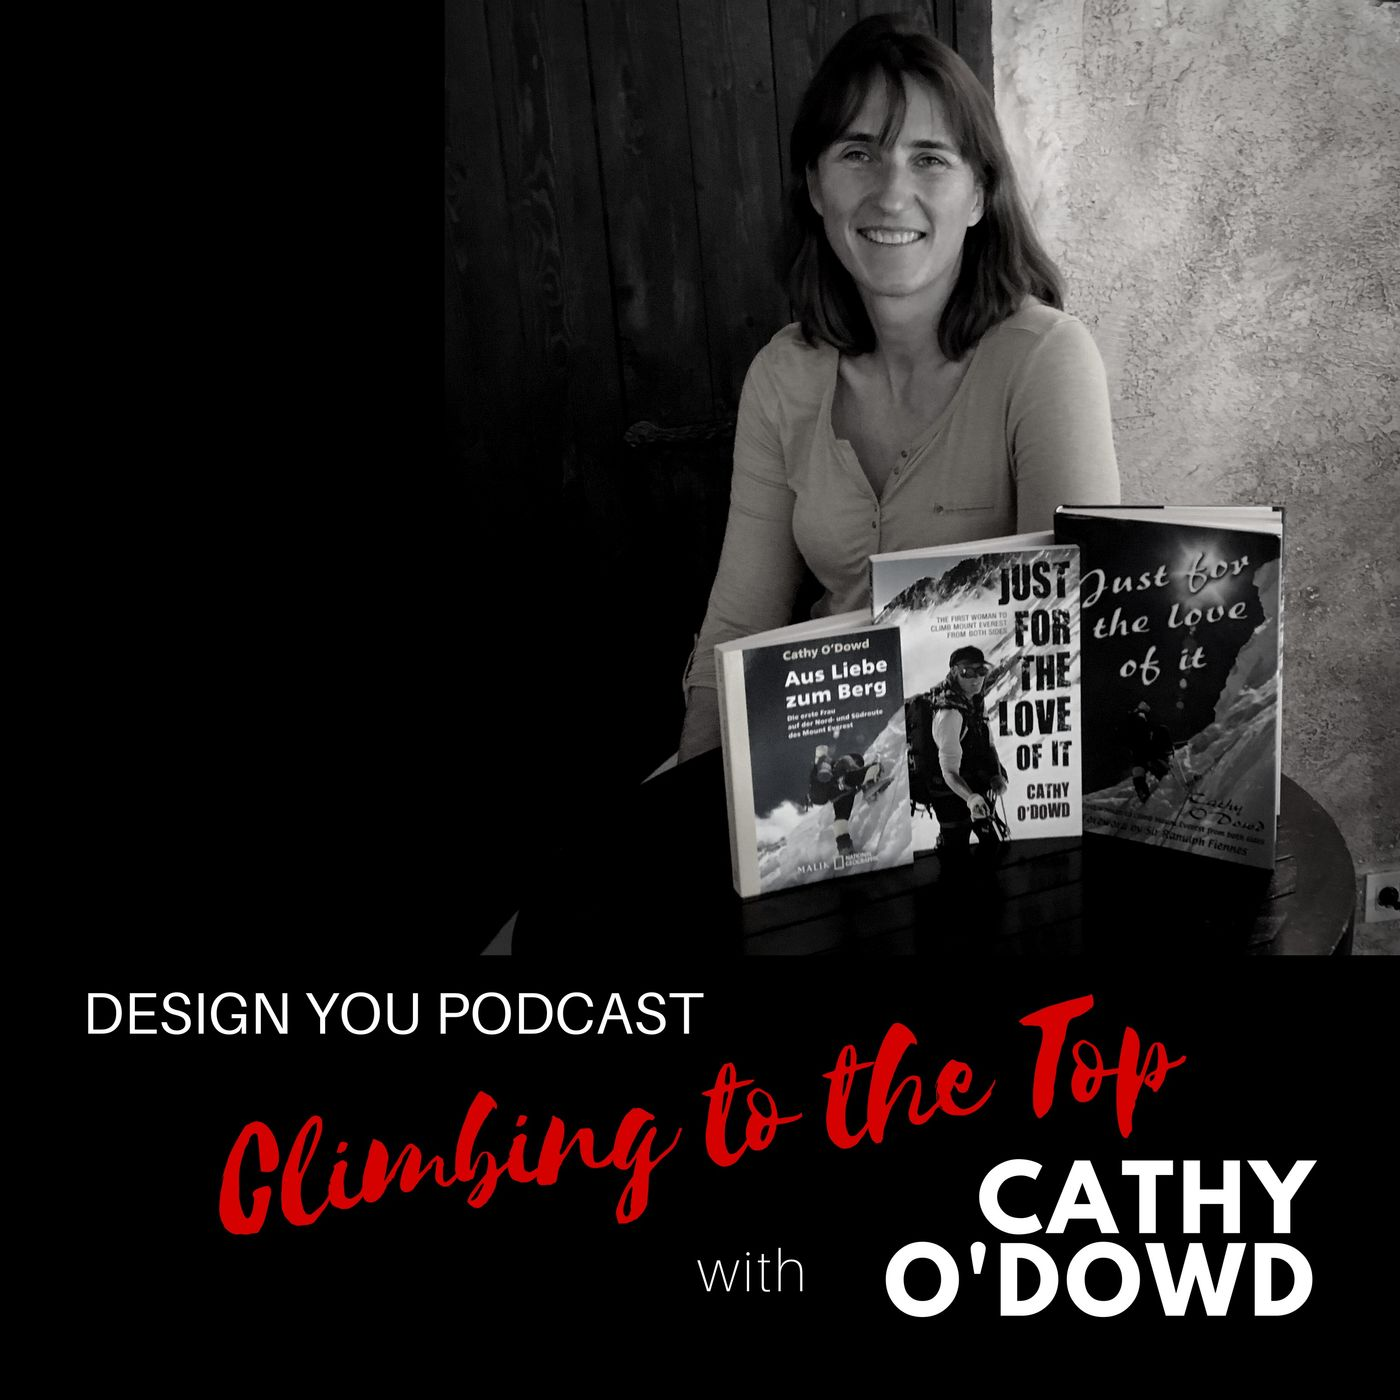 EP 034 – Climbing to the Top with Cathy O'Dowd